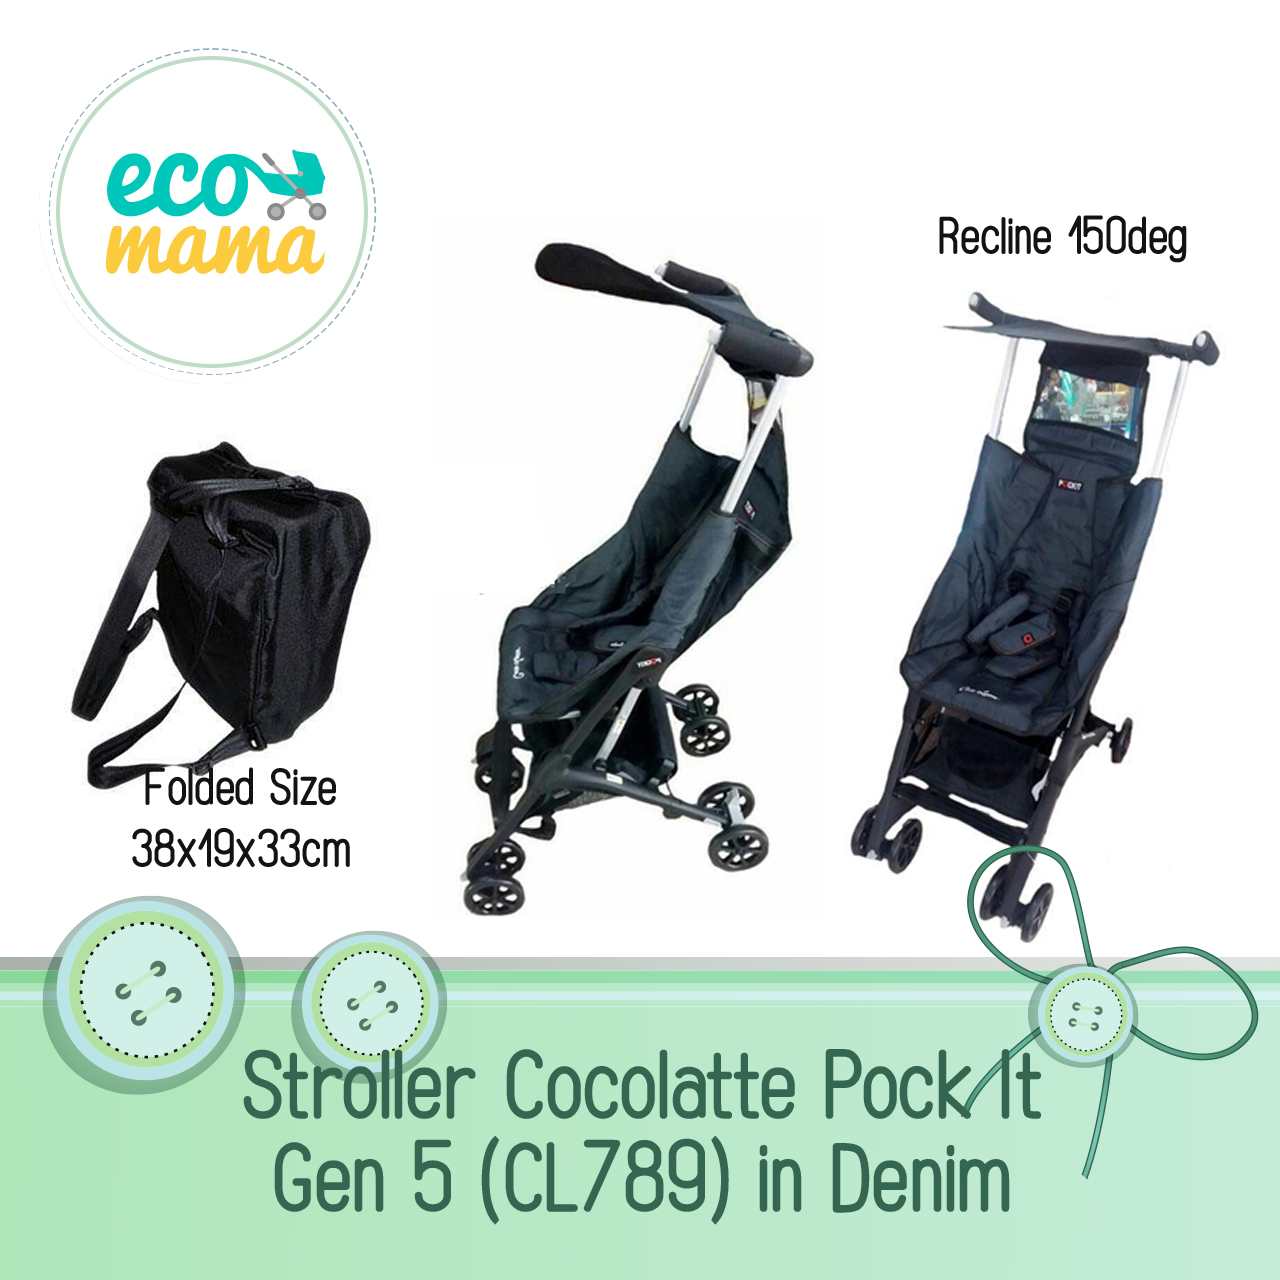 Cocolatte Pockit CL789 Gen 5 Denim